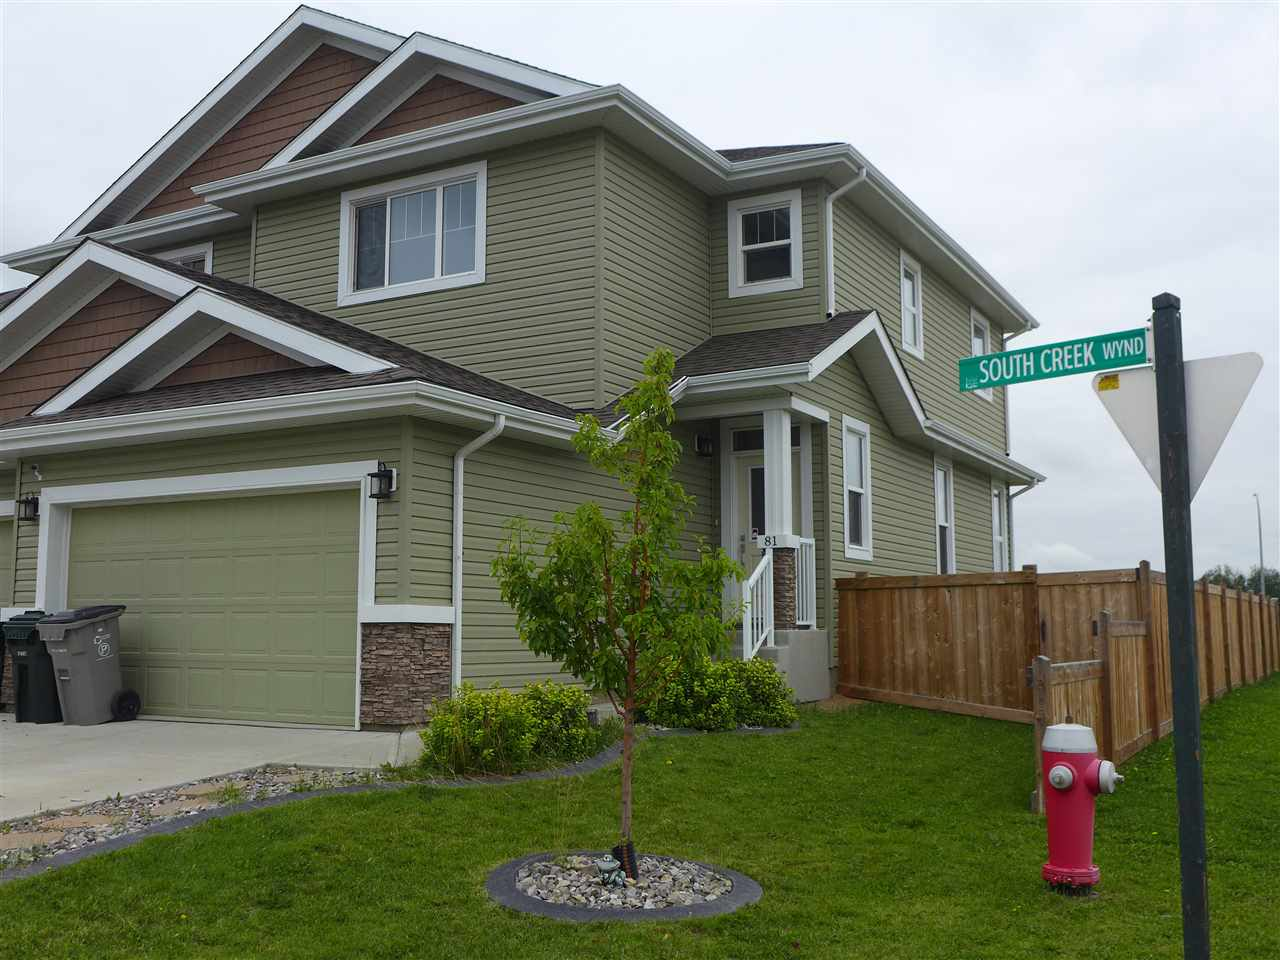 81 South Creek Wynd, Stony Plain, MLS® # E4169338